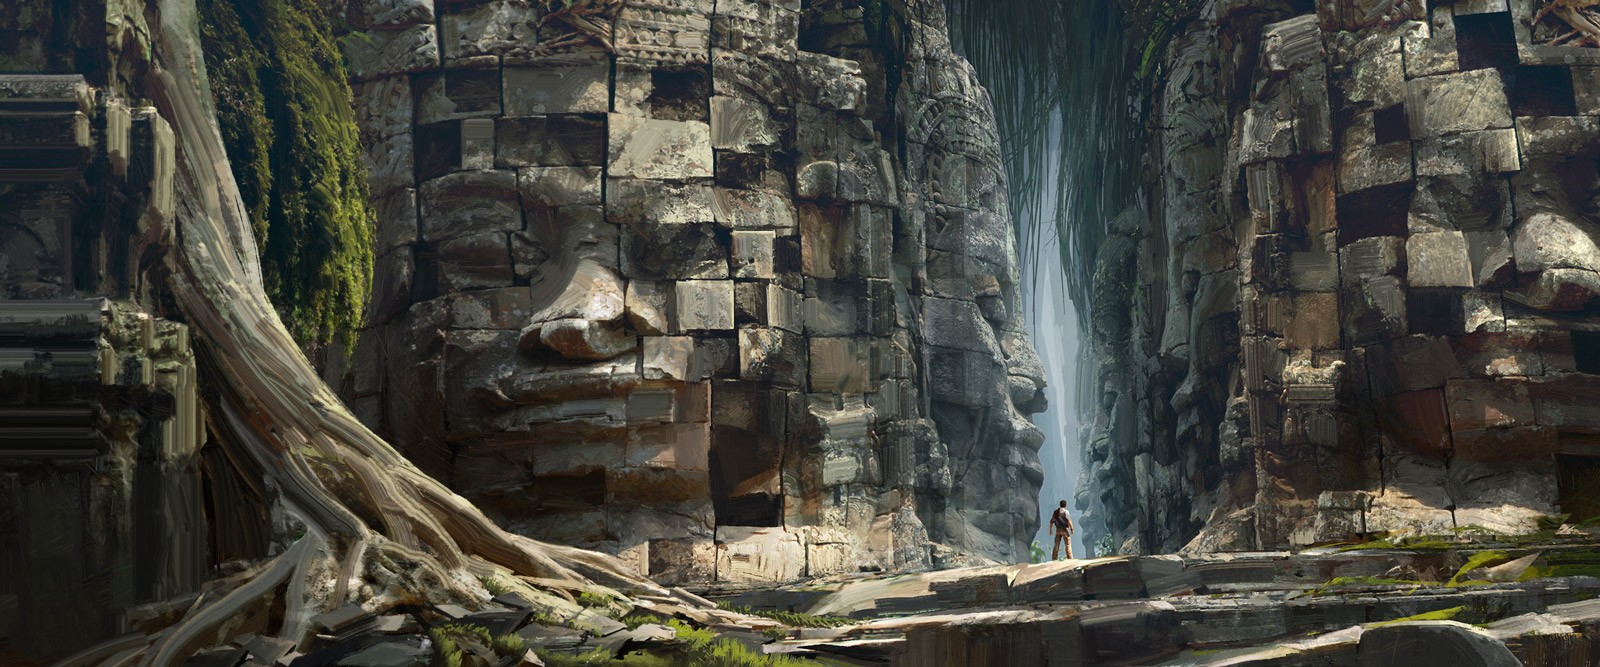 Artwork Undiscovered Uncharted 4 Naughty Dog Cook And Becker